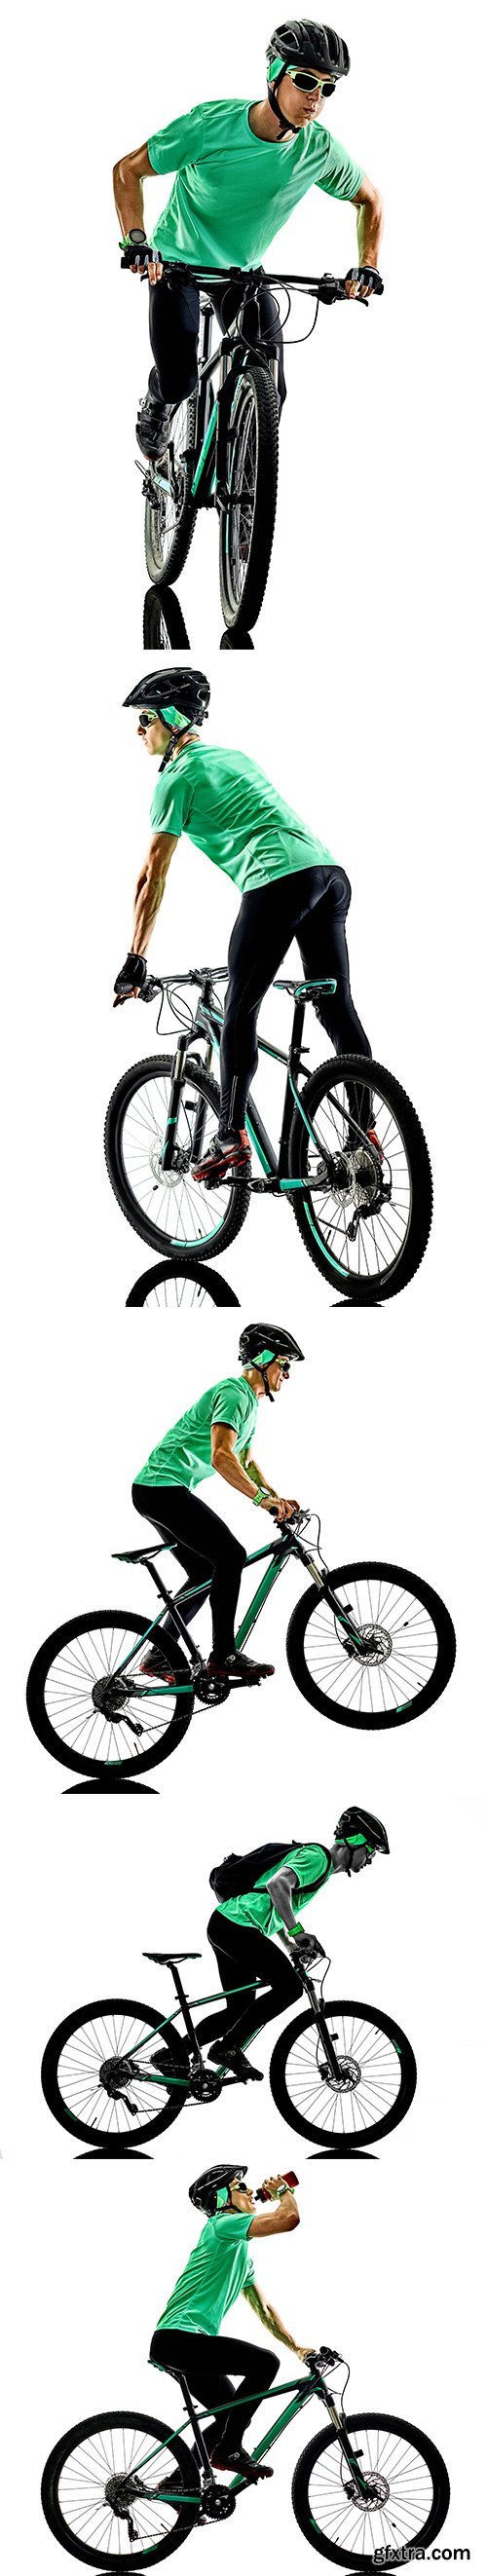 One Man Practicing Mountain Bike Isolated - 9xJPGs